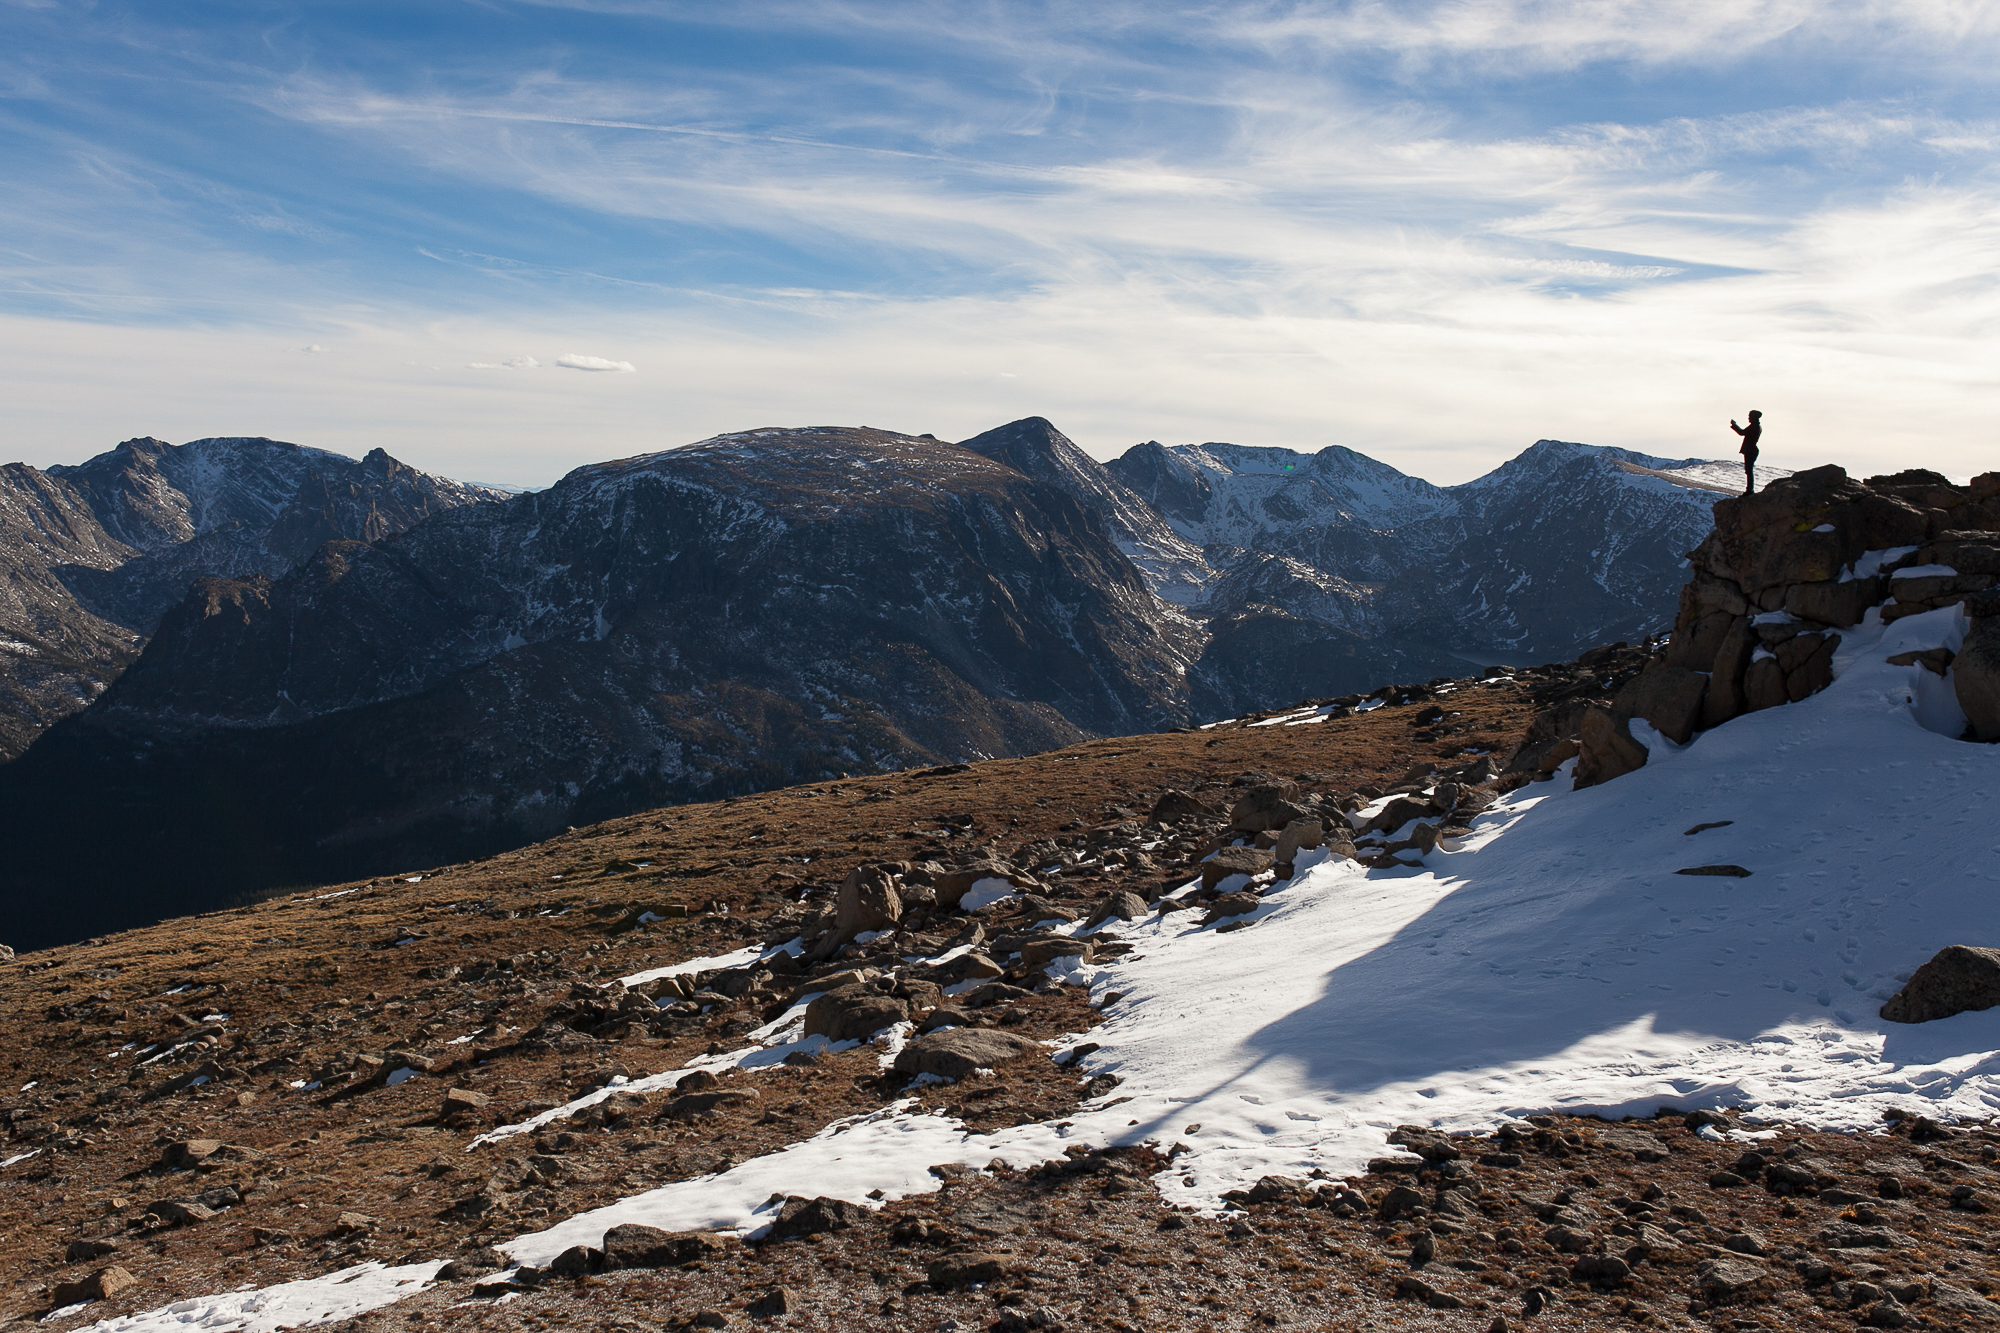 070Travel_Adventure_Outdoor_Photography_Outlive_Creative_COLORADO_Tundra_Trails_Rocky_Mountains.jpg